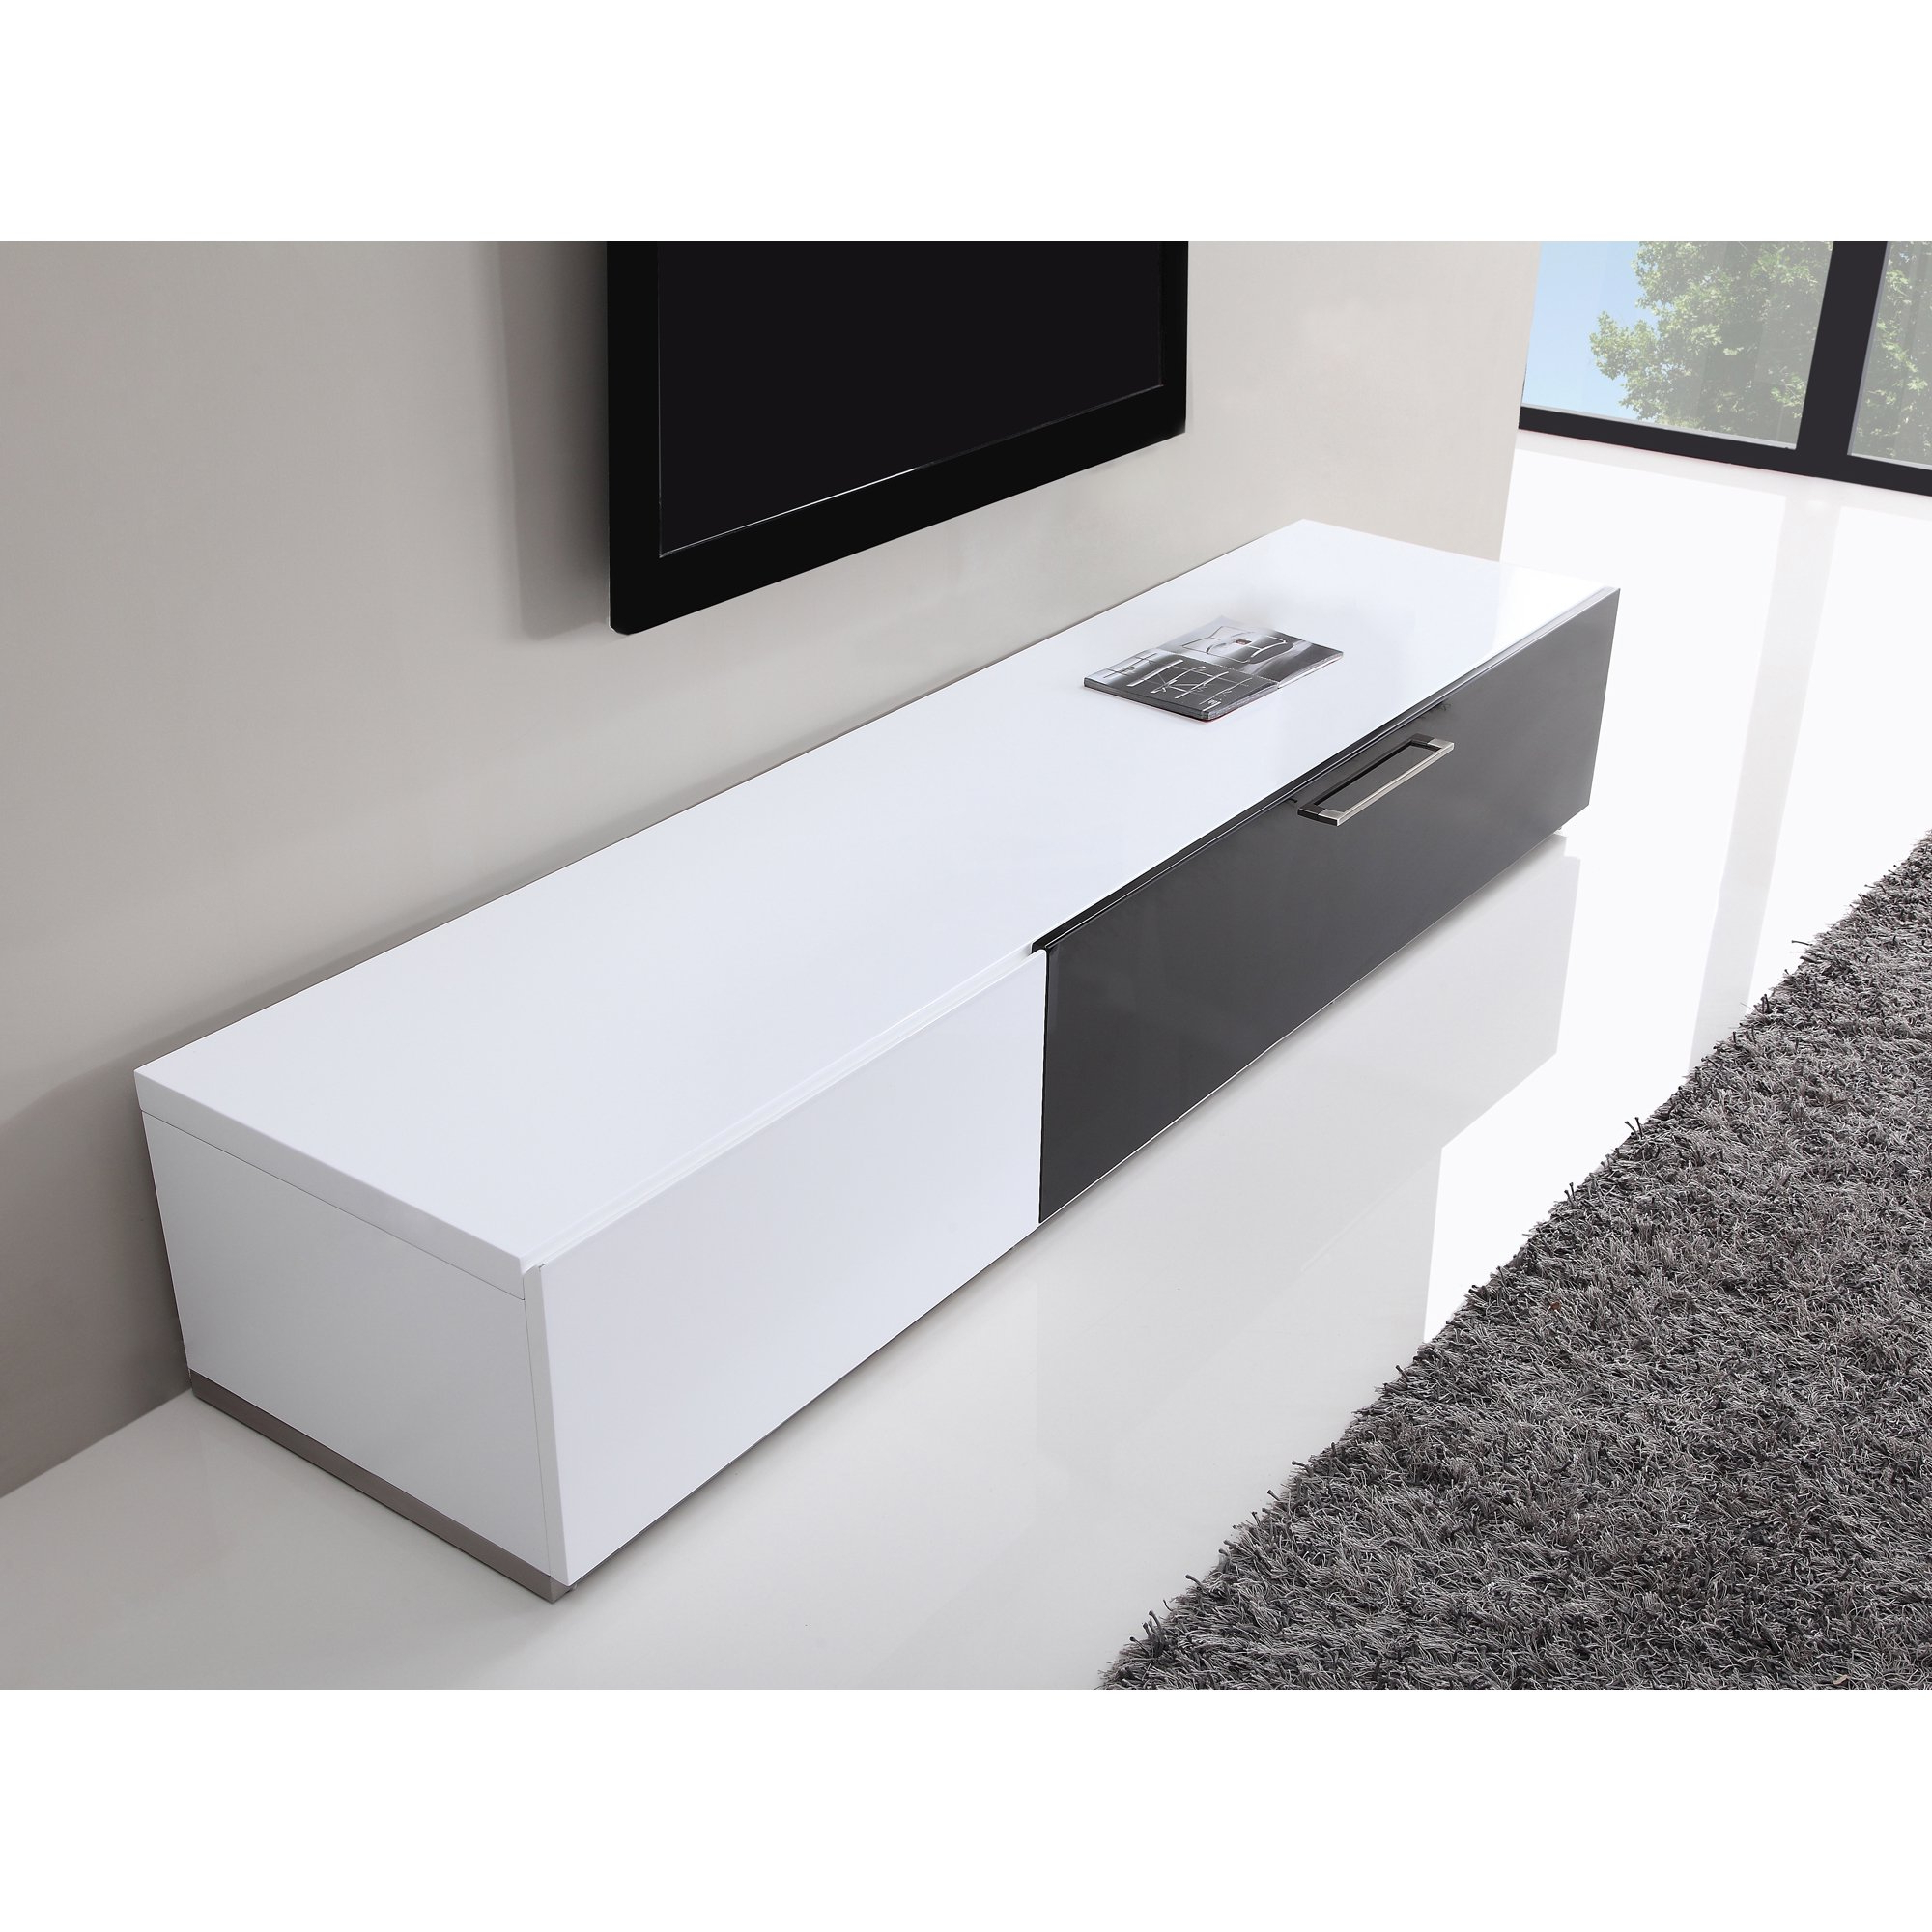 Shop B Modern Producer White/ Black Modern Tv Stand With Ir Glass For Current Cheap White Tv Stands (Gallery 9 of 20)